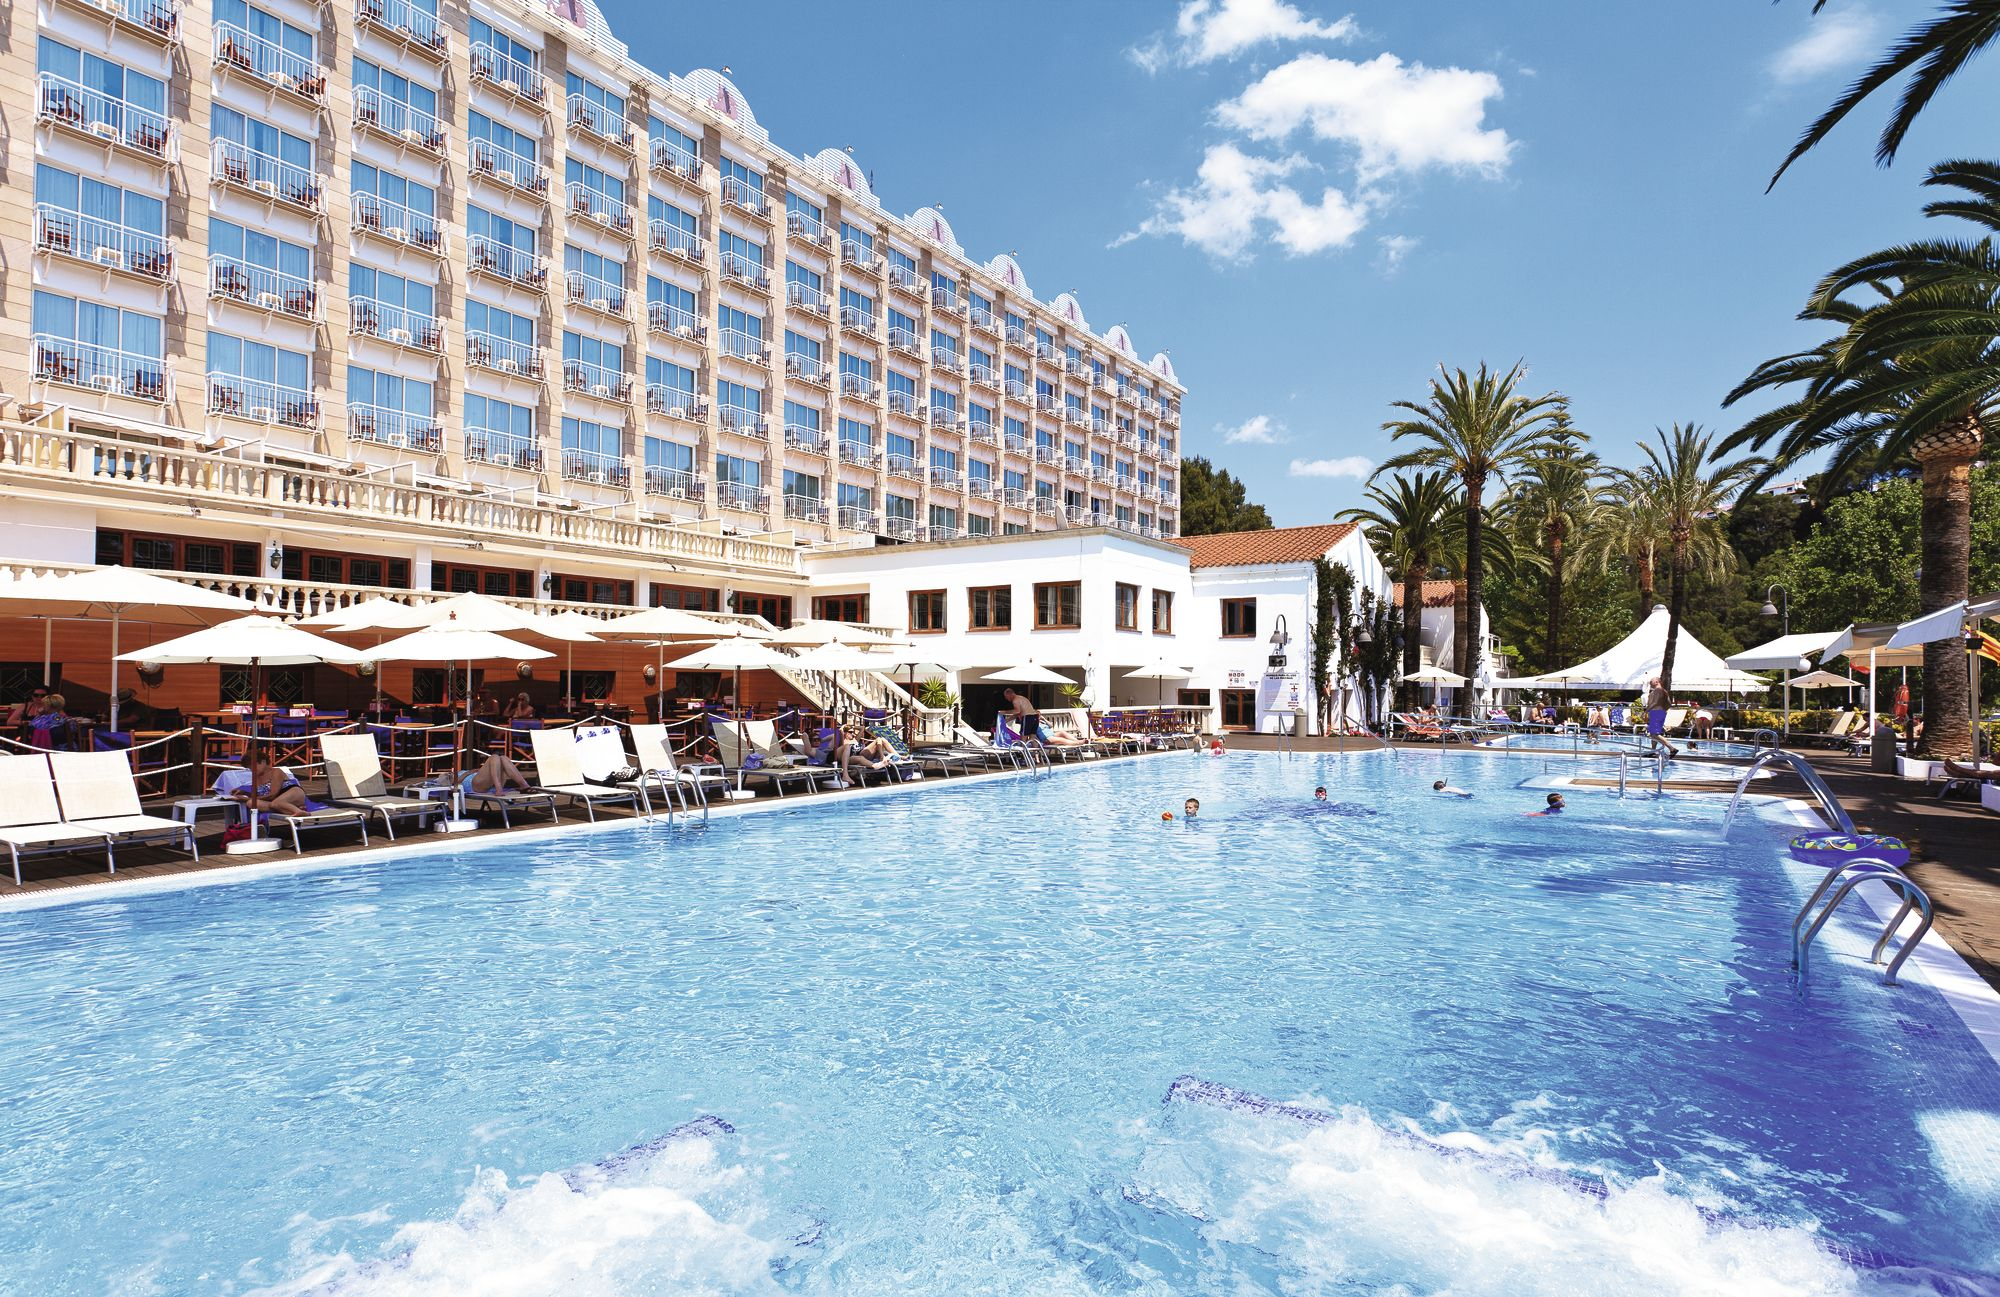 Holiday to Cala Galdana Hotel in CALA GALDANA (SPAIN) for 3 nights (HB) departing from birmingham on 10 May